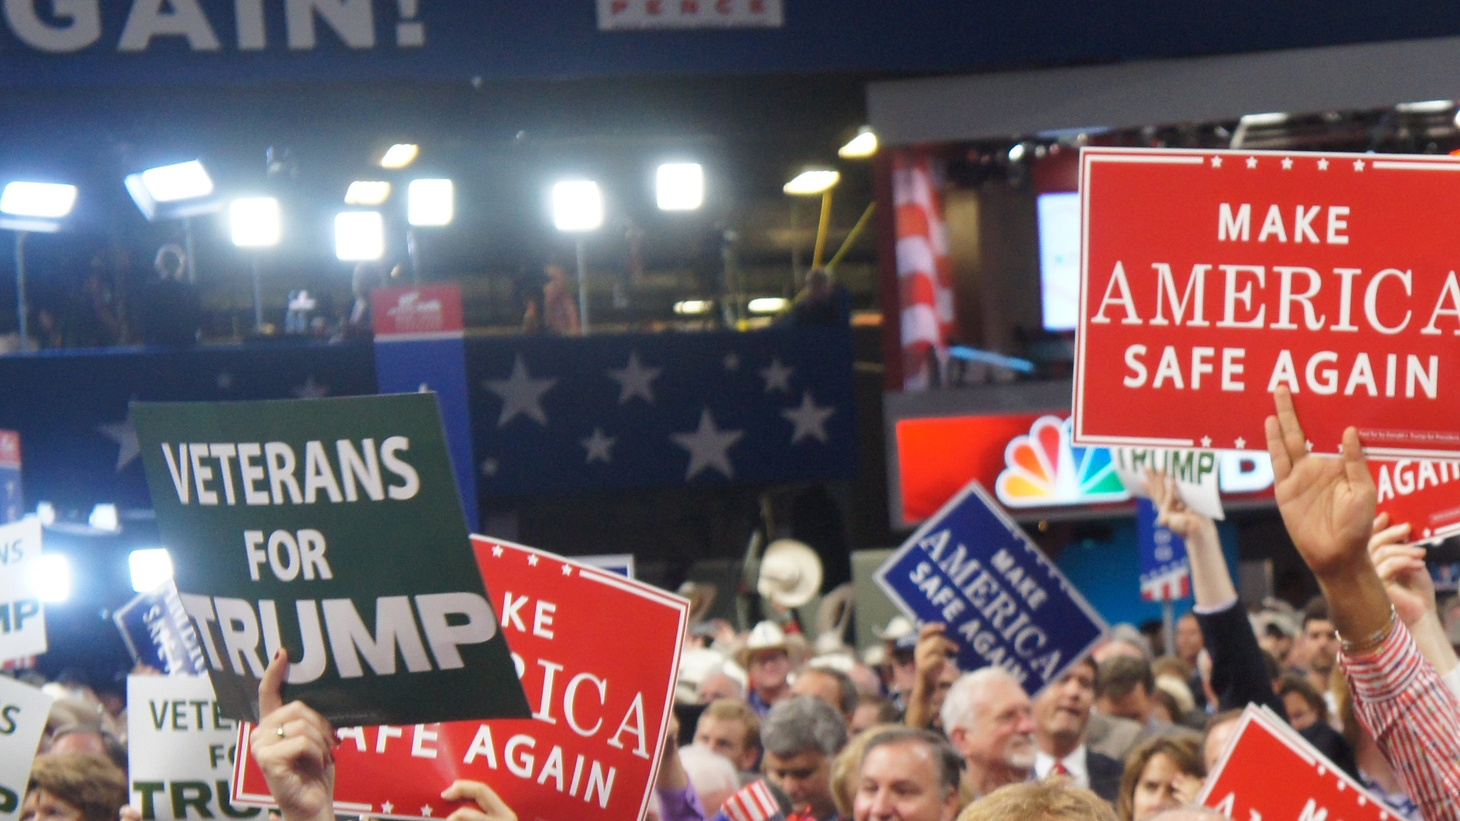 Latinos attending the convention share why they are supporting the Republican candidate and a pollster explains where voting trends could be headed for Latinos over the coming decades.